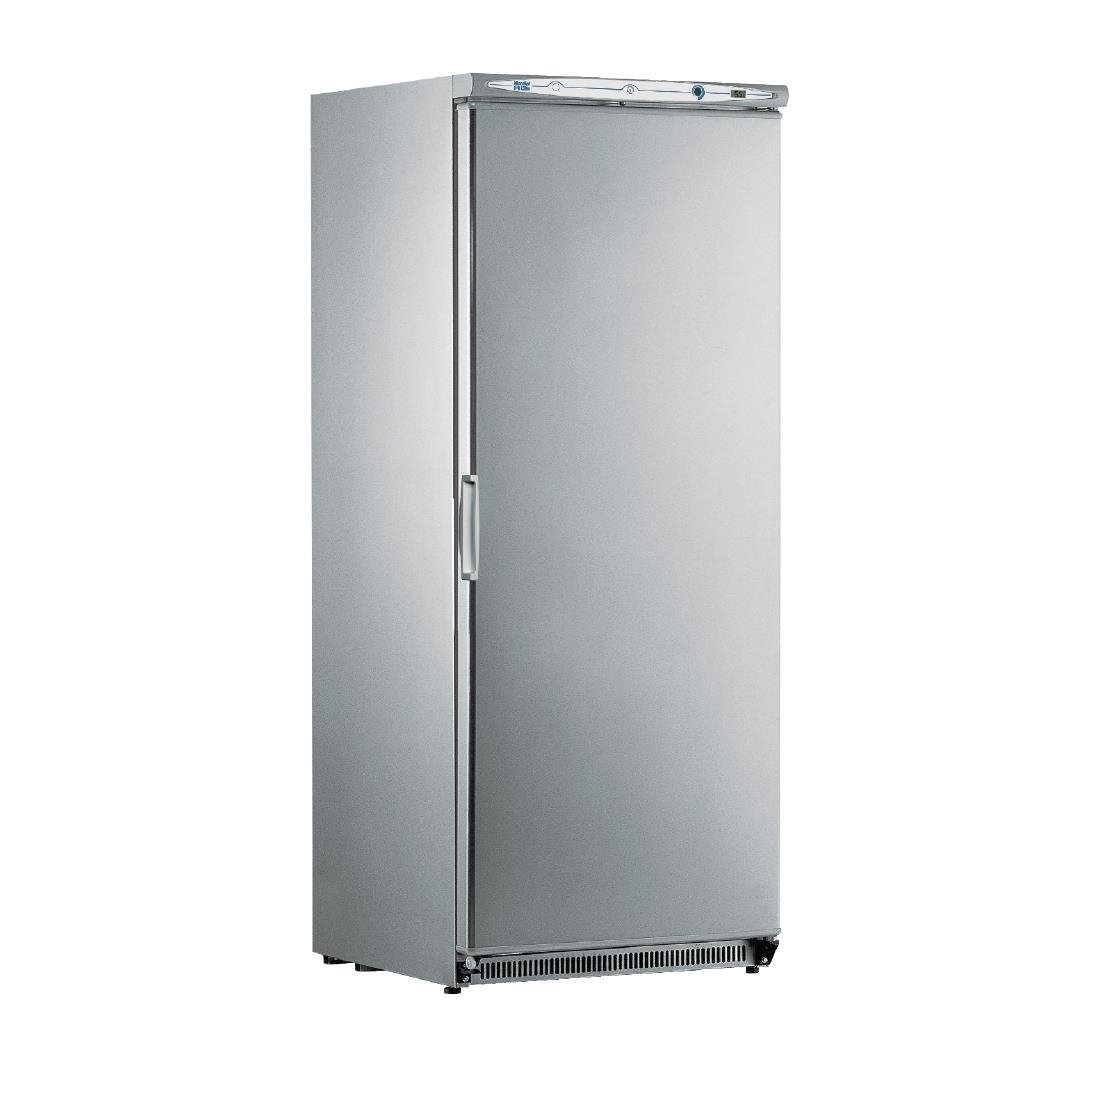 Mondial Elite 1 Door 640Ltr Cabinet Fridge Stainless Steel KICPRX60LT